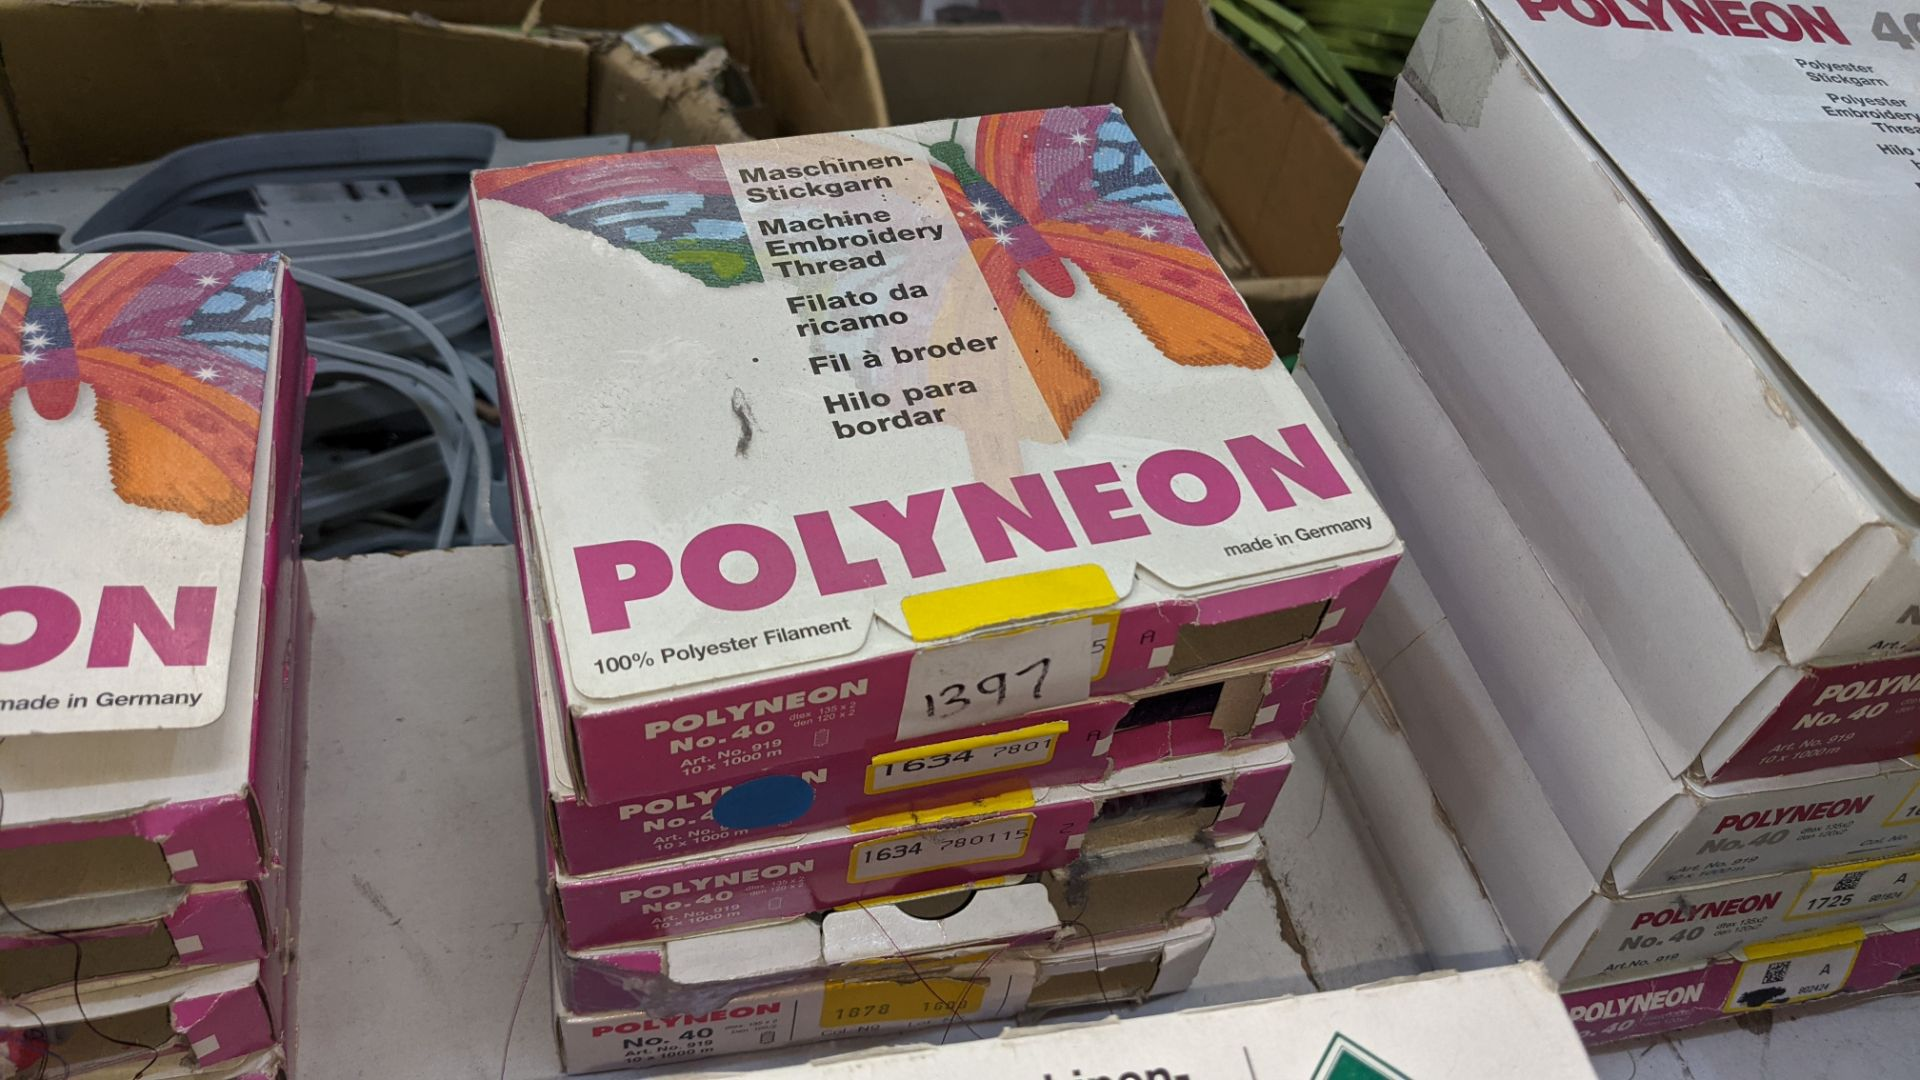 18 boxes of Madeira Polyneon machine embroidery thread - Image 6 of 10